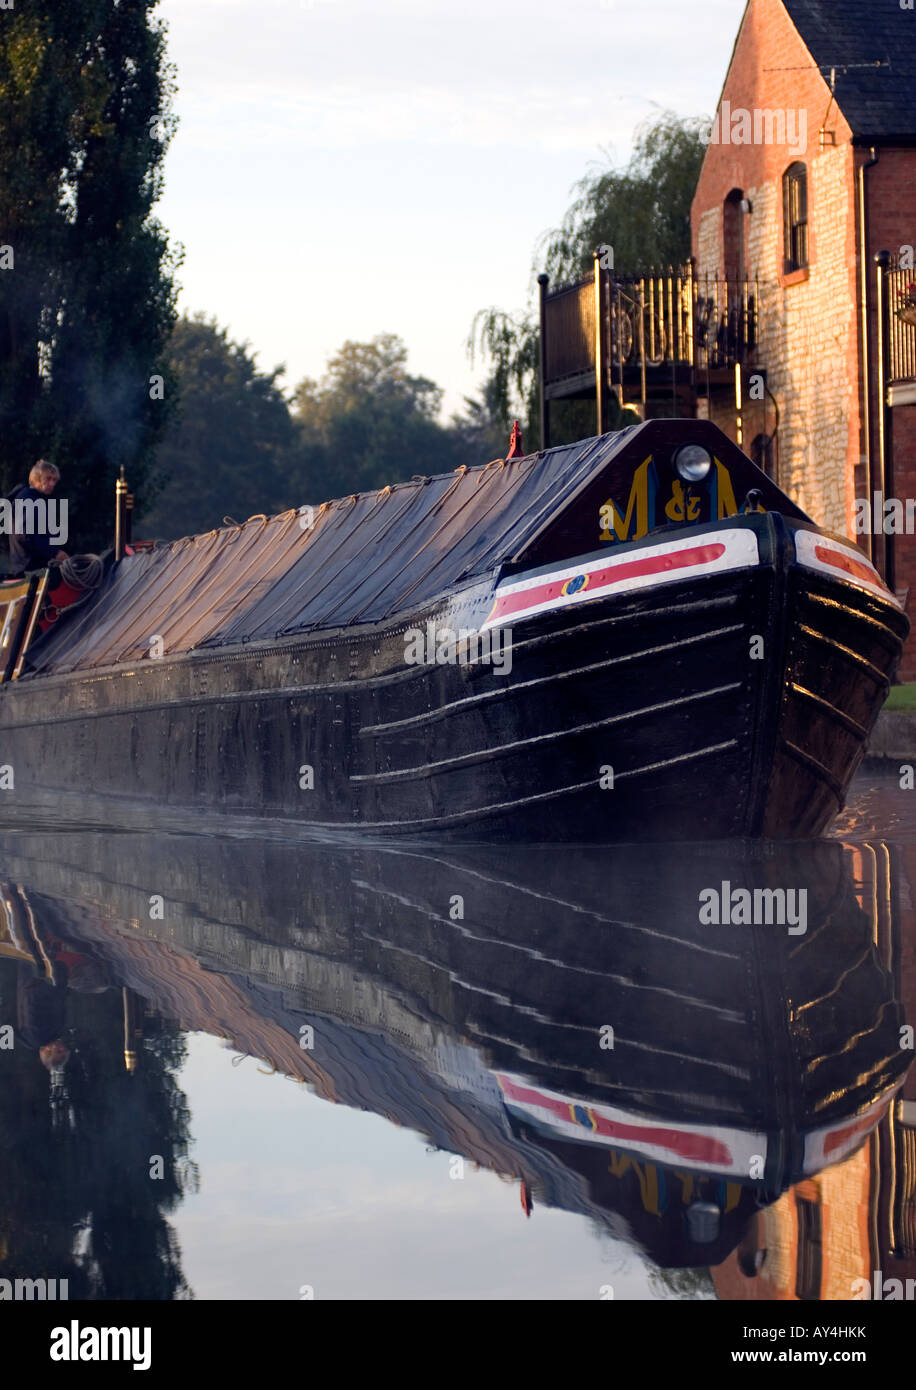 Doug Blane Traditional historic narrowboat navigating at Cosgrove on the Gran Union canalStock Photo